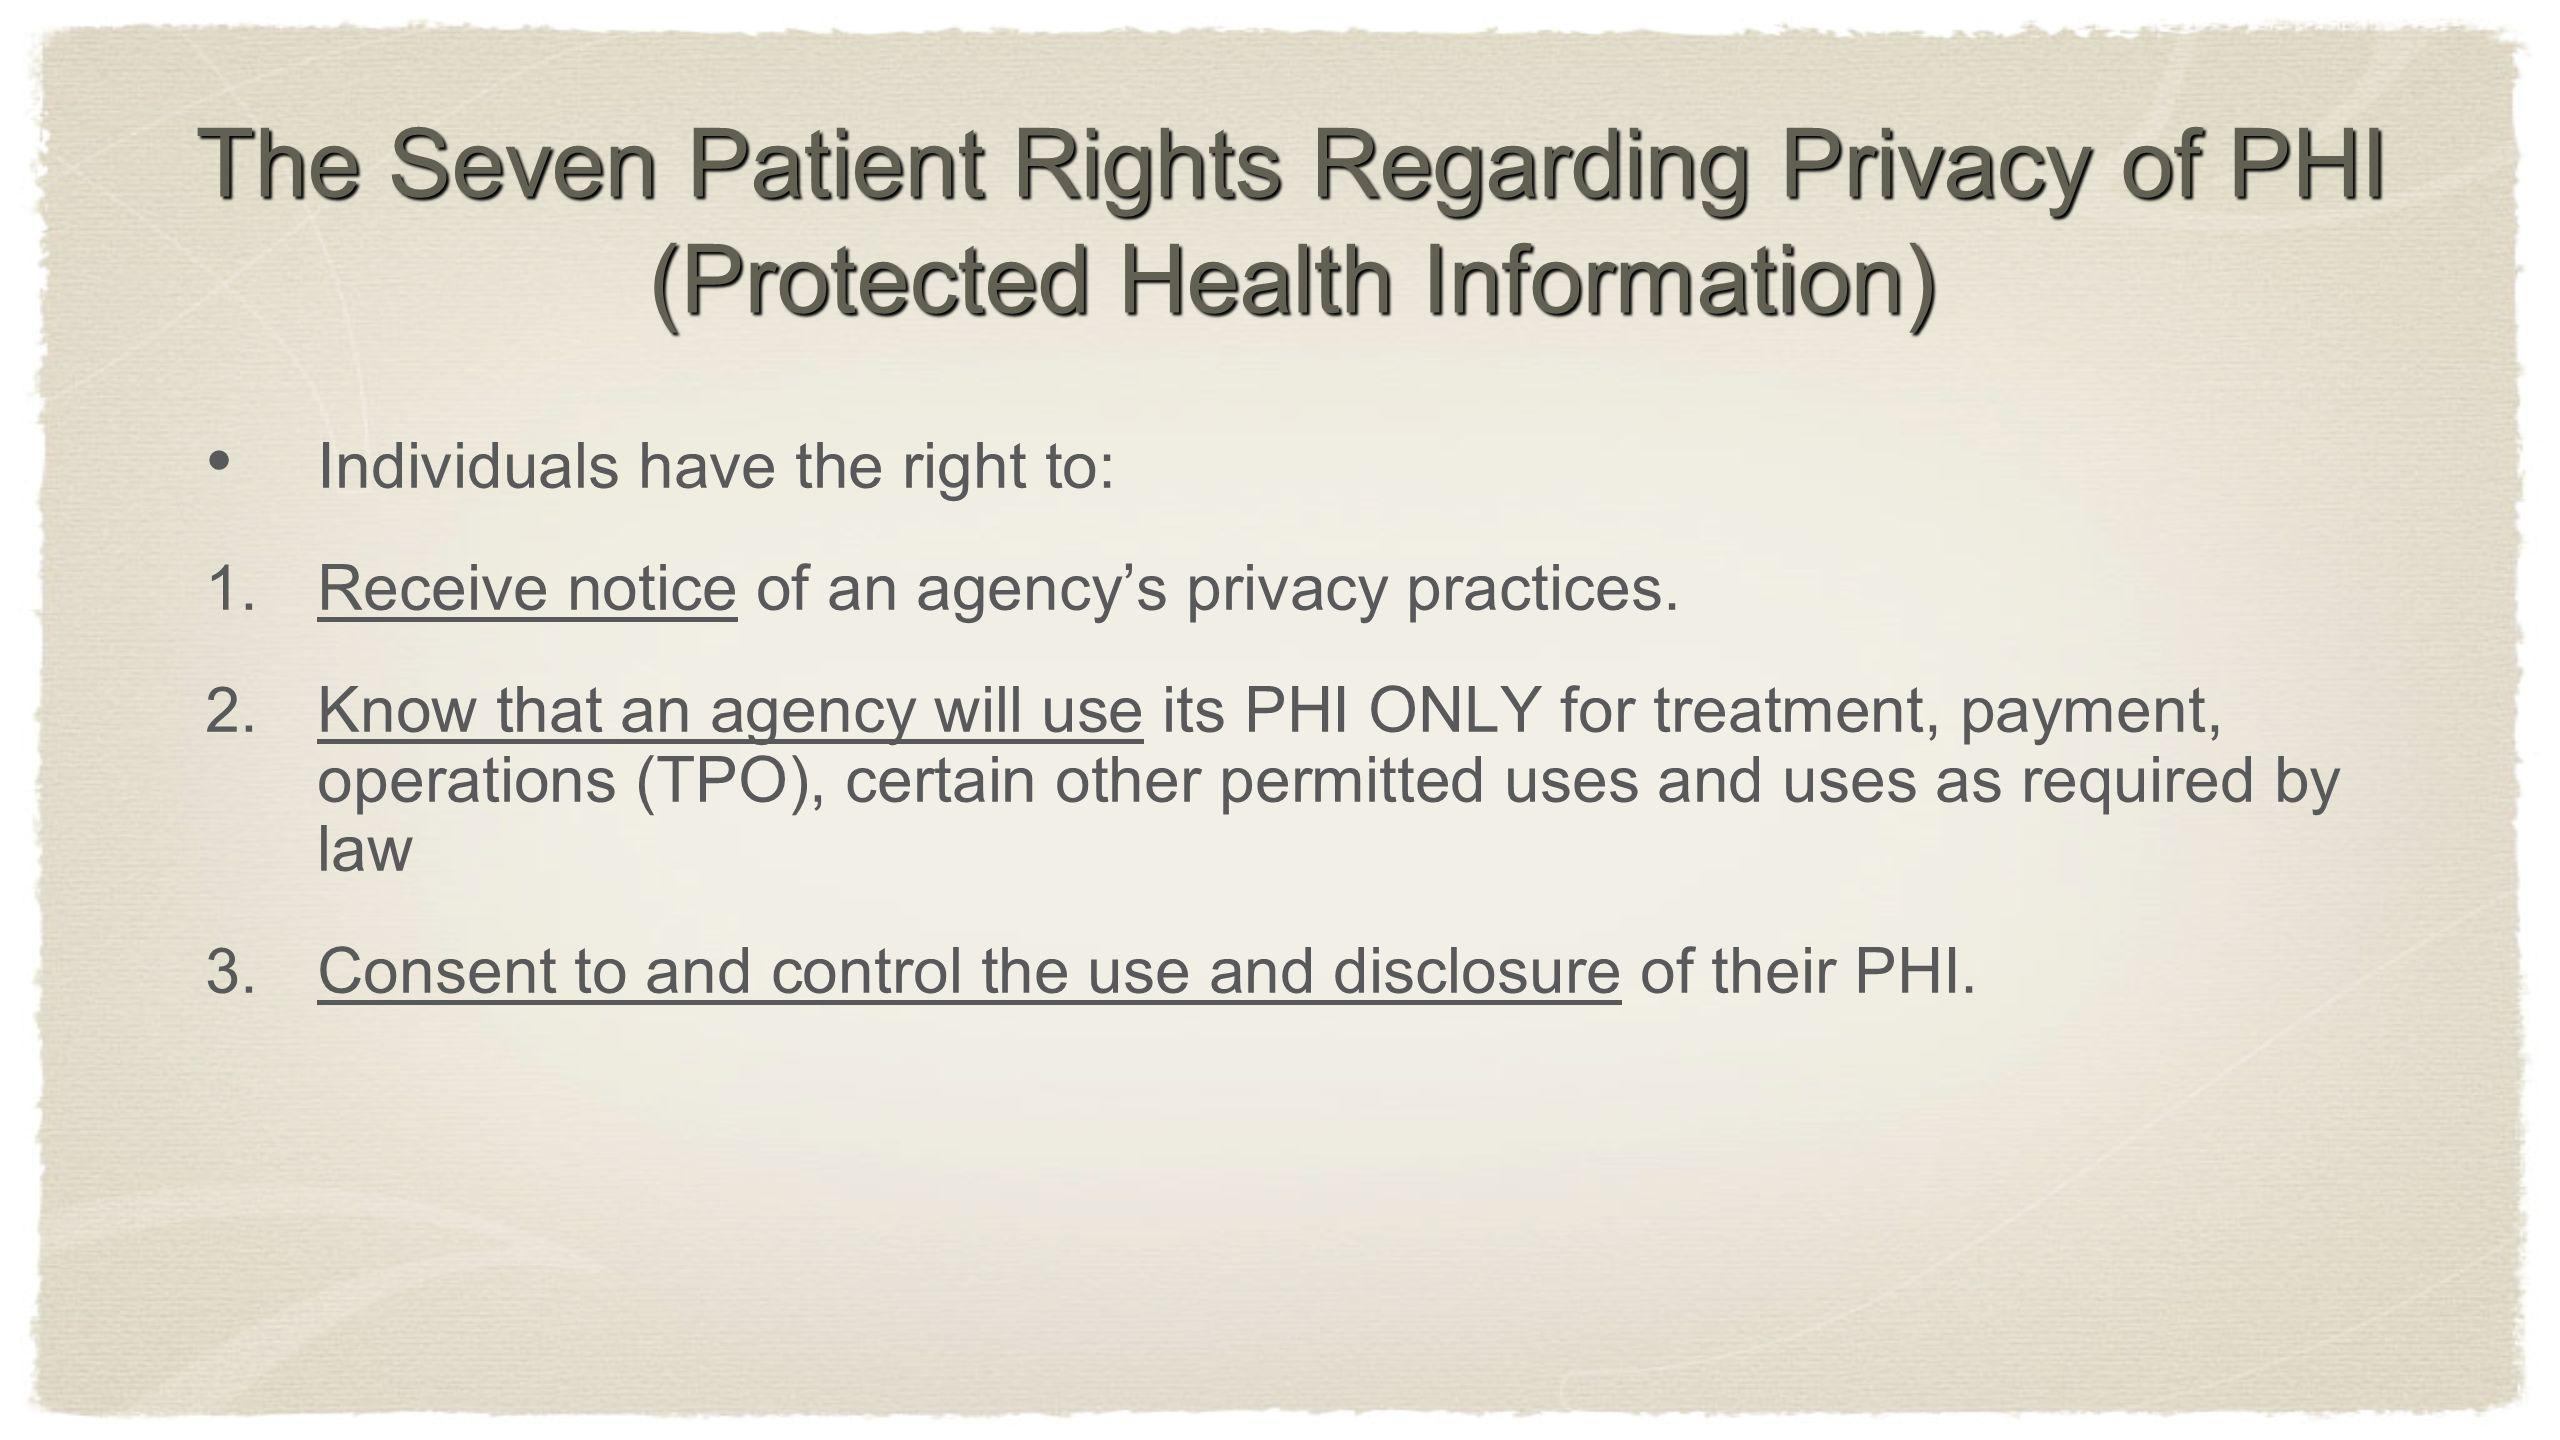 The Seven Patient Rights Regarding Privacy of PHI (Protected Health Information) Individuals have the right to: 1. Receive notice of an agencys privac